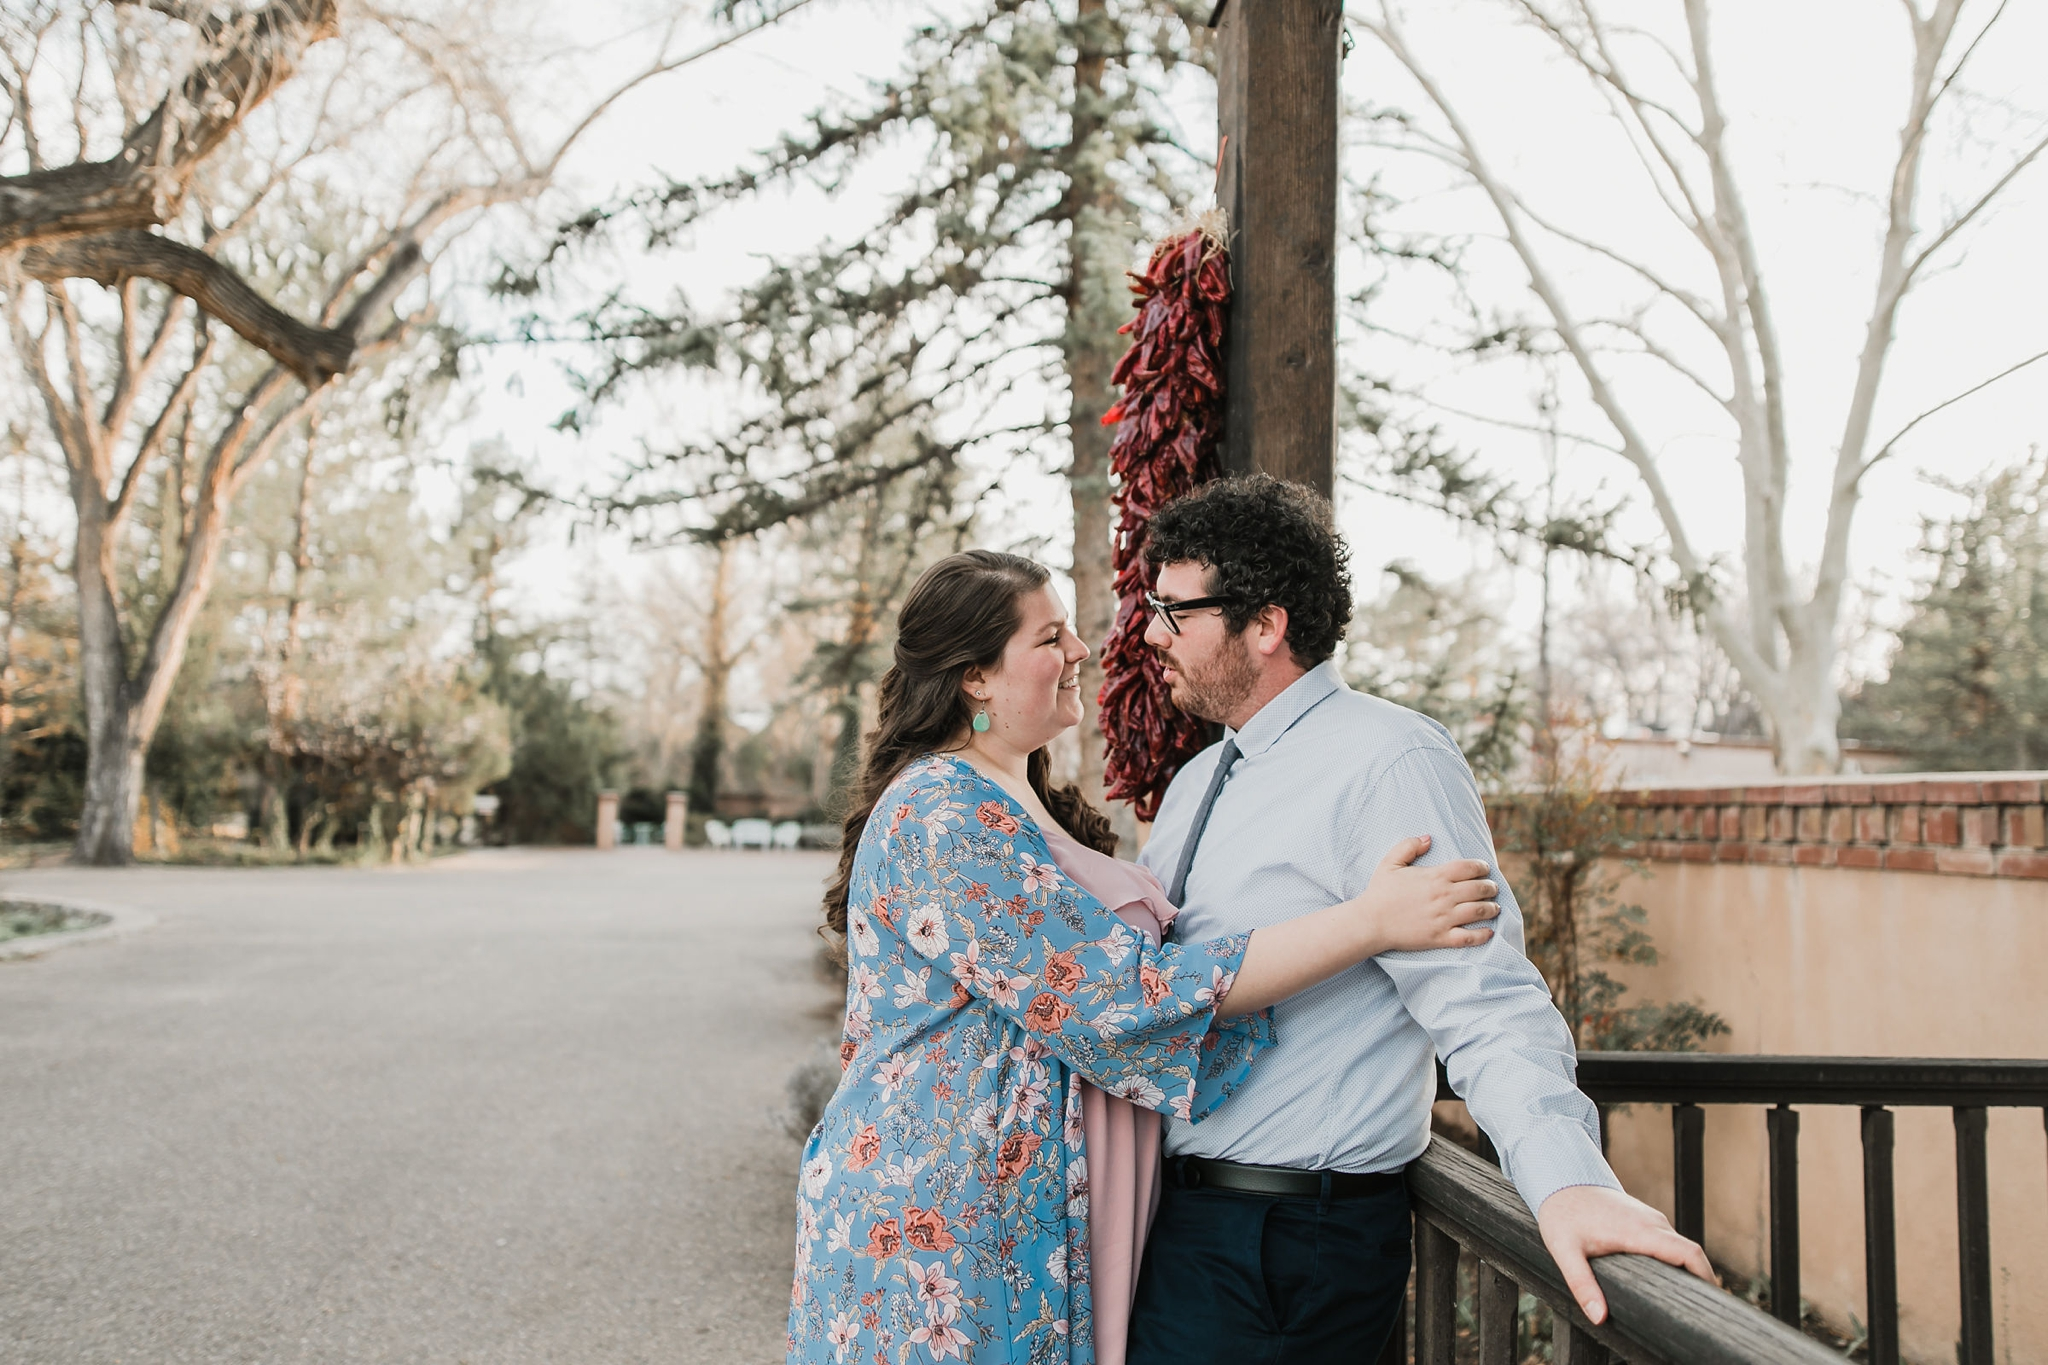 Alicia+lucia+photography+-+albuquerque+wedding+photographer+-+santa+fe+wedding+photography+-+new+mexico+wedding+photographer+-+new+mexico+engagement+-+los+poblanos+engagement+-+spring+engagement_0016.jpg